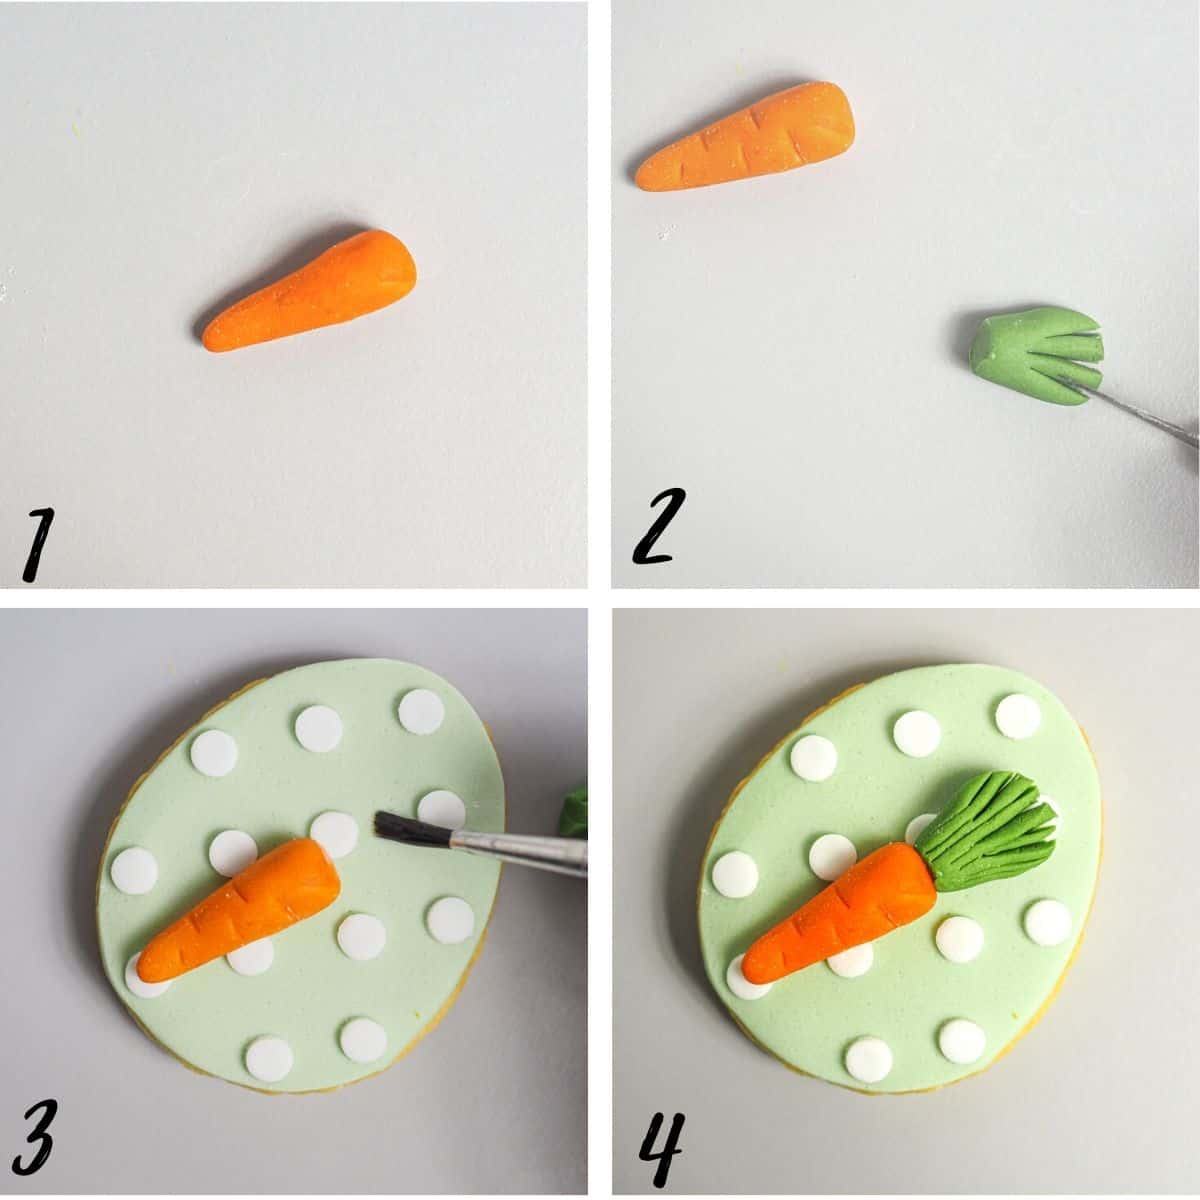 A poster of 4 images showing how to make fondant carrot